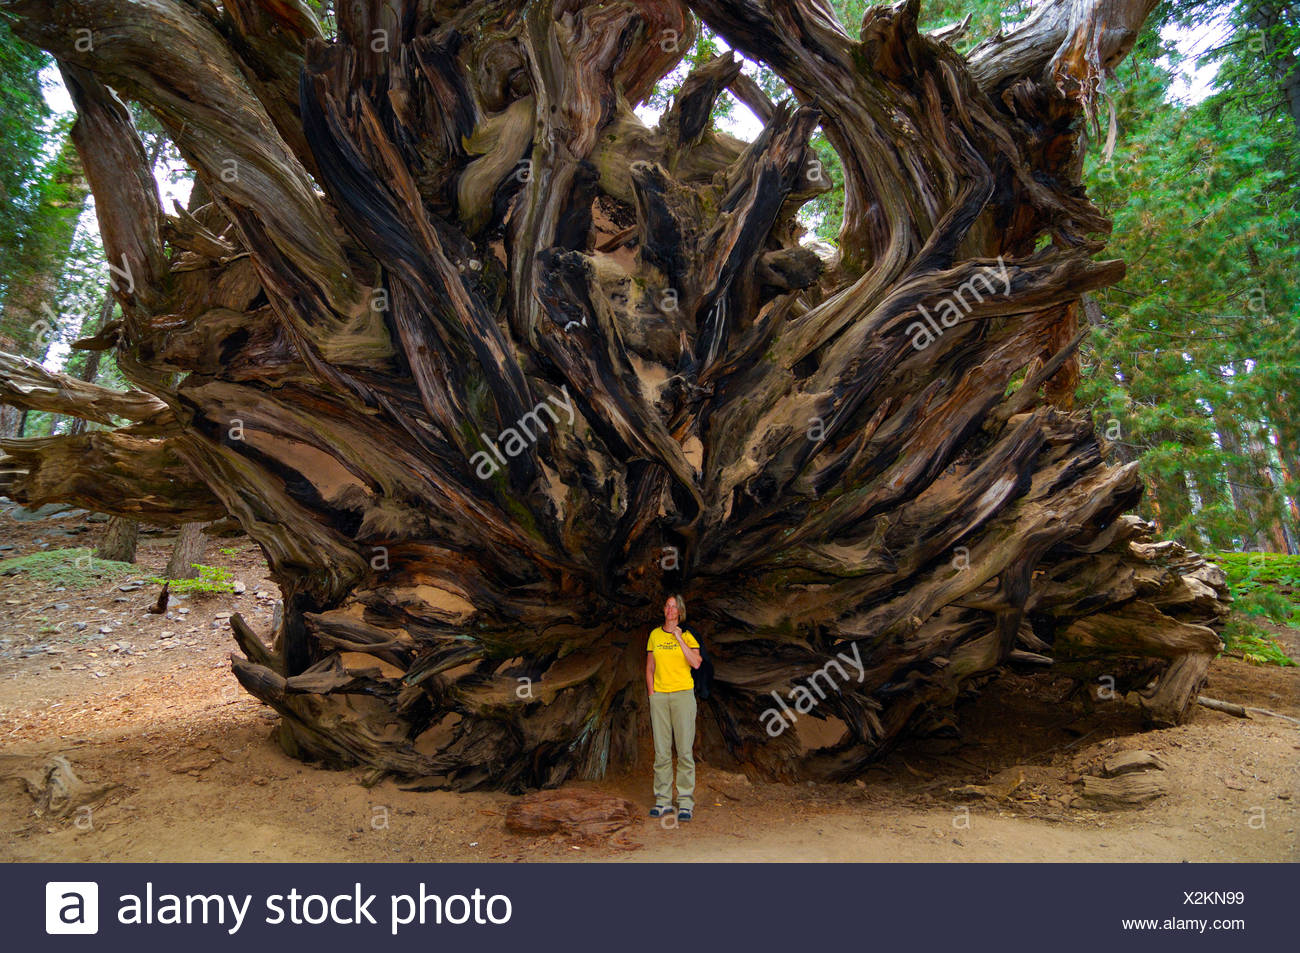 Woman standing in front of the huge roots of a Giant Sequoia (Sequoiadendron giganteum), Sequoia National Park, California, USA - Stock Image